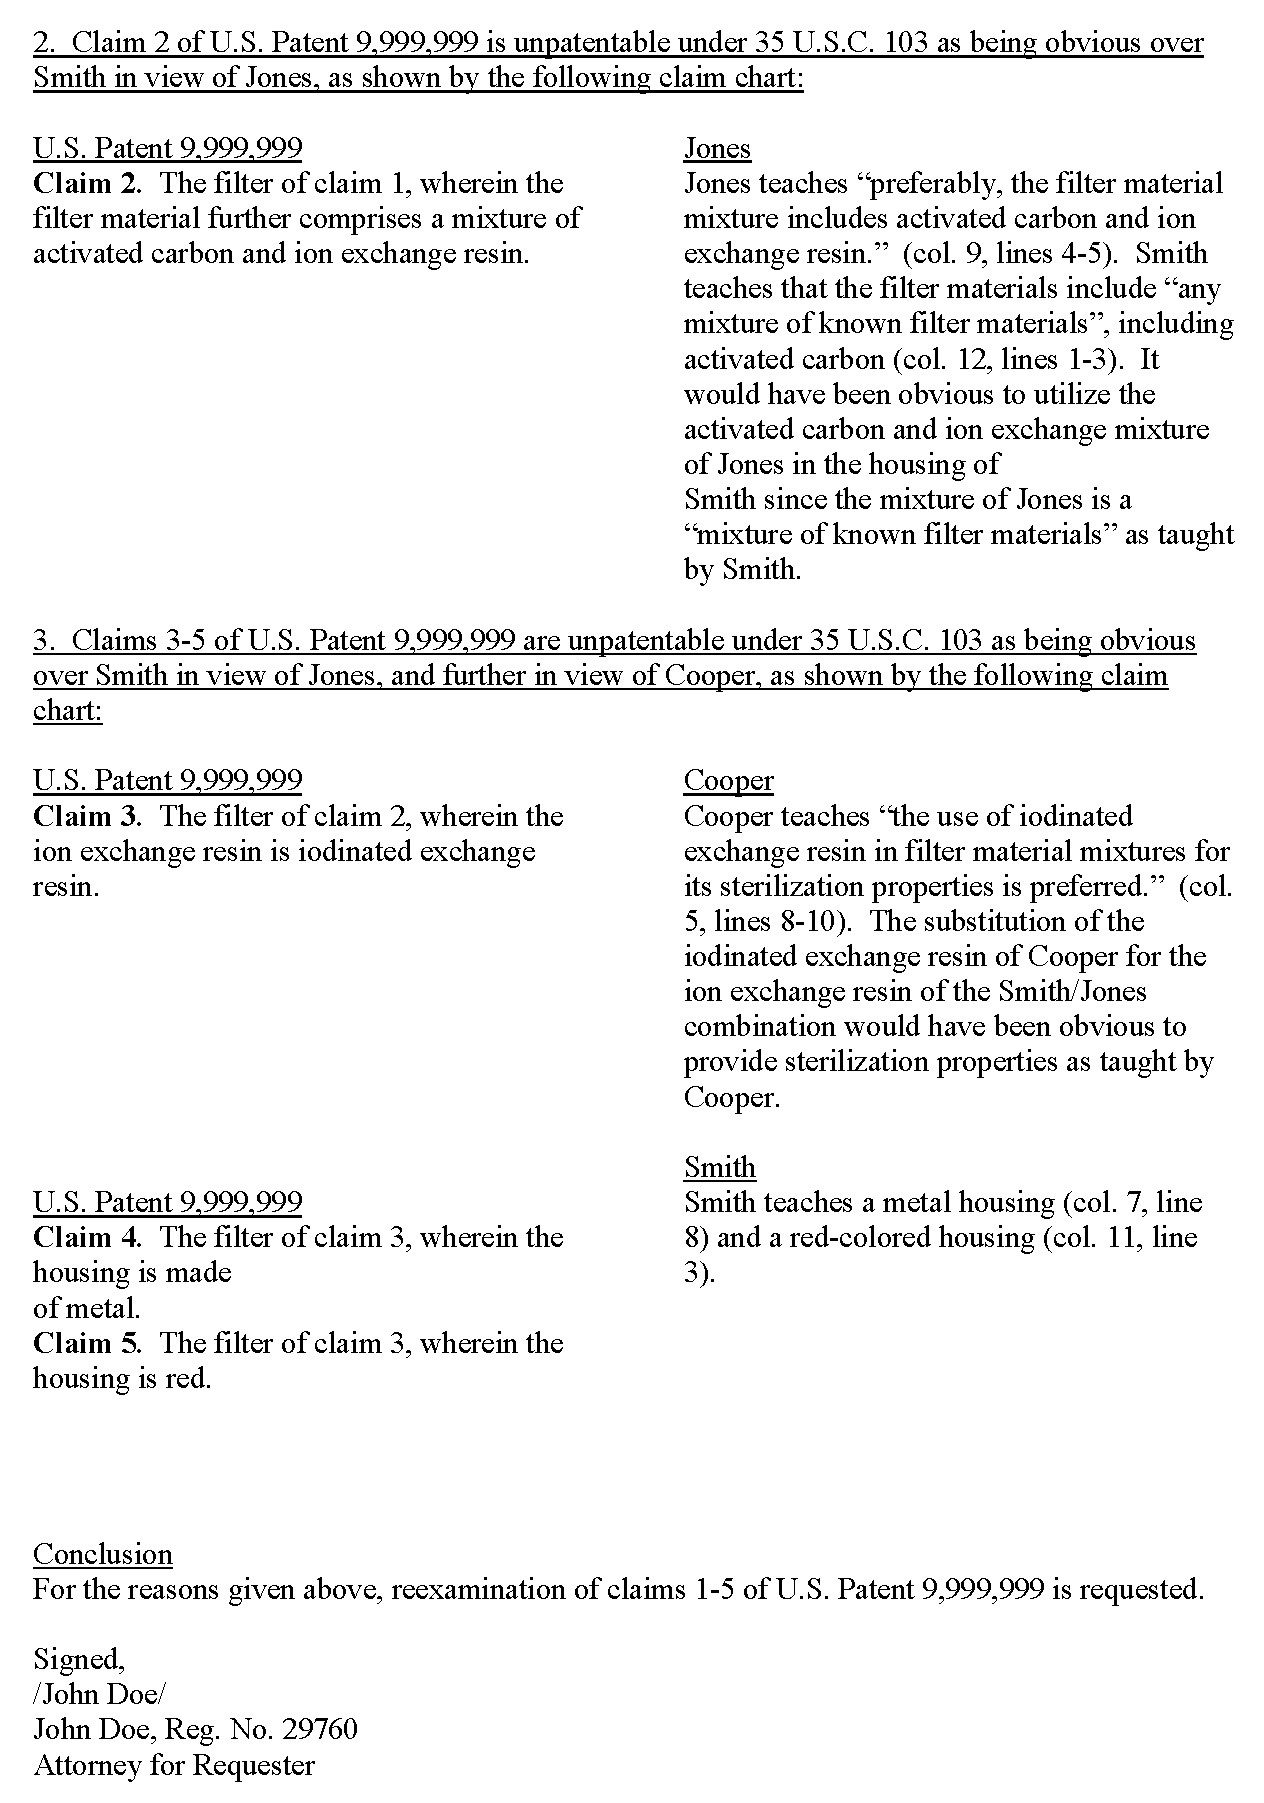 Paralegal Cover Letter. Request For Reexamination Of U.S. Patent 9,999,999  (Page 2)